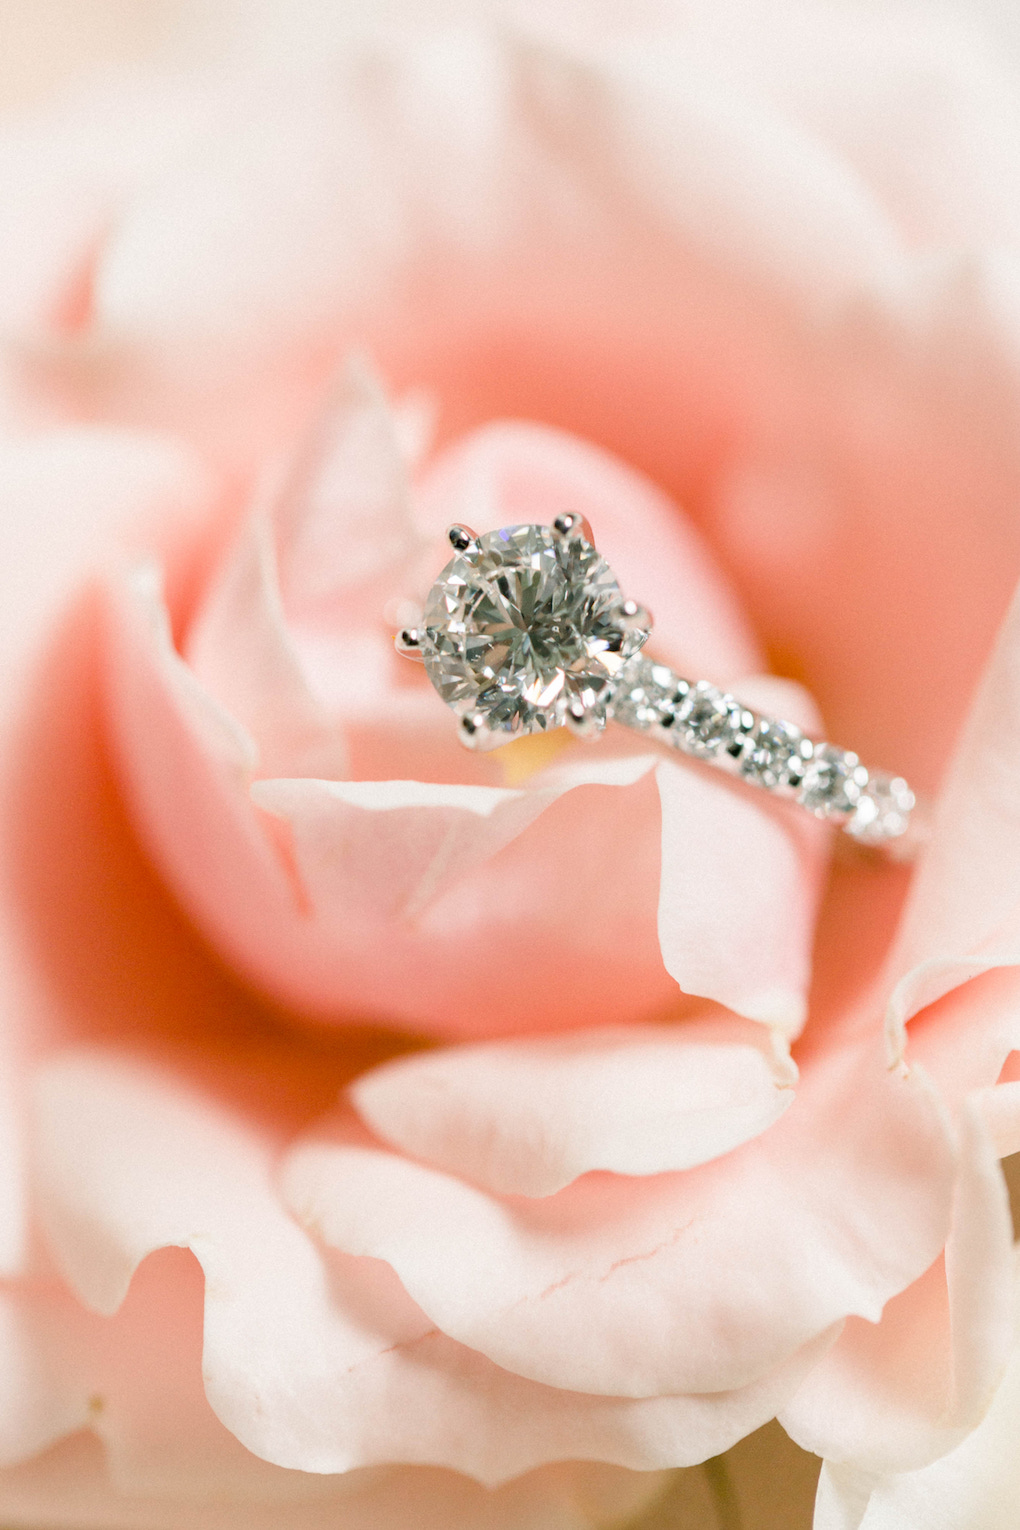 Engagement ring: Romantic Fairytale wedding at the Omni William Penn in Pittsburgh, PA planned by Exhale Events. Find more wedding inspiration at exhale-events.com!